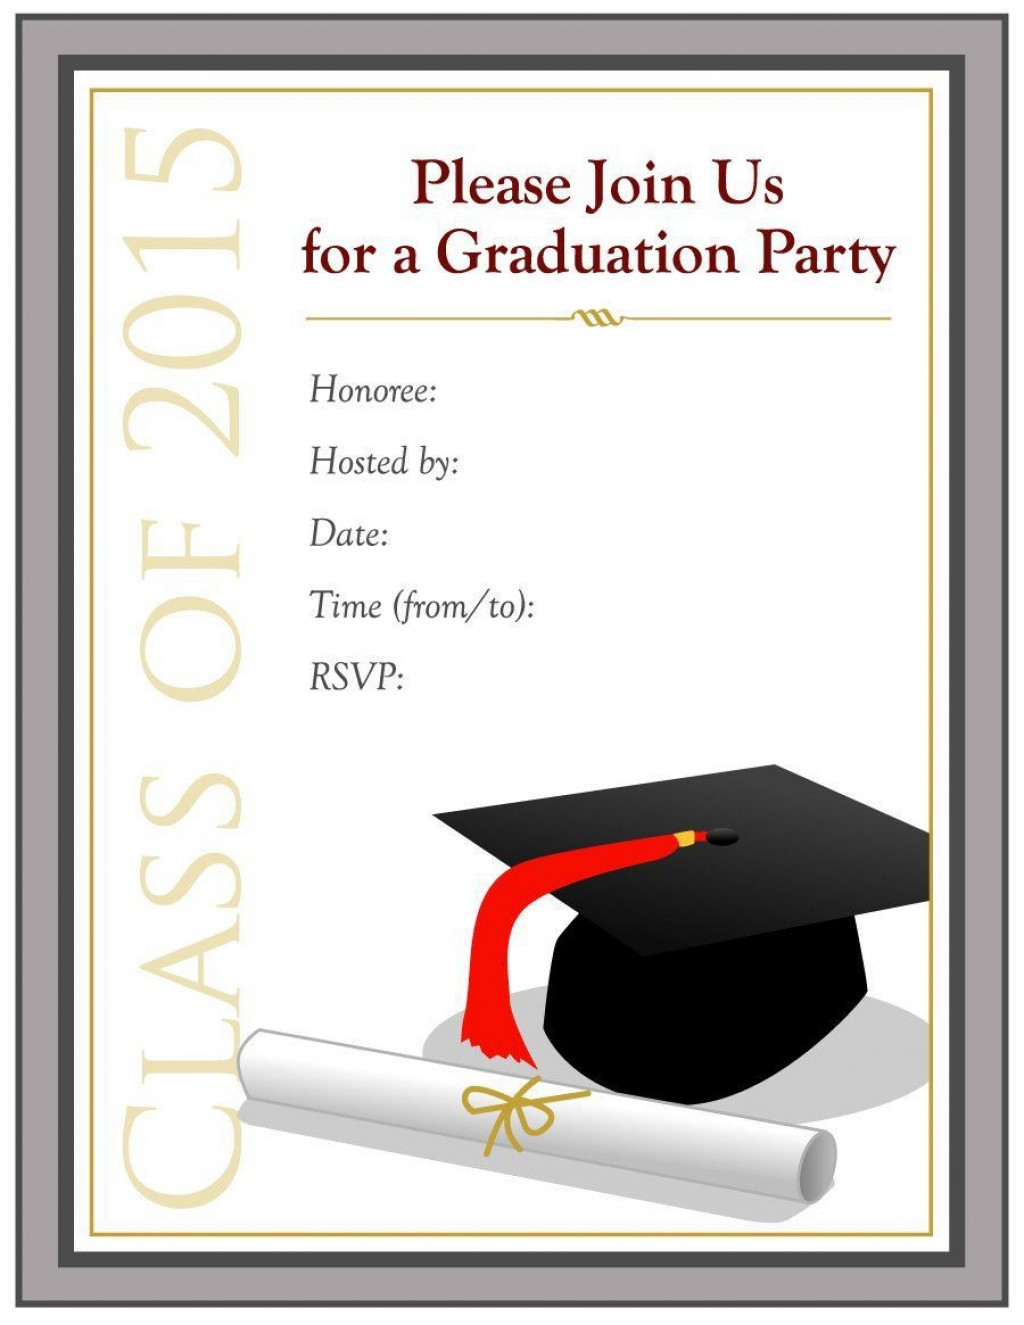 002 Remarkable Microsoft Word Graduation Party Invitation Template Design Large